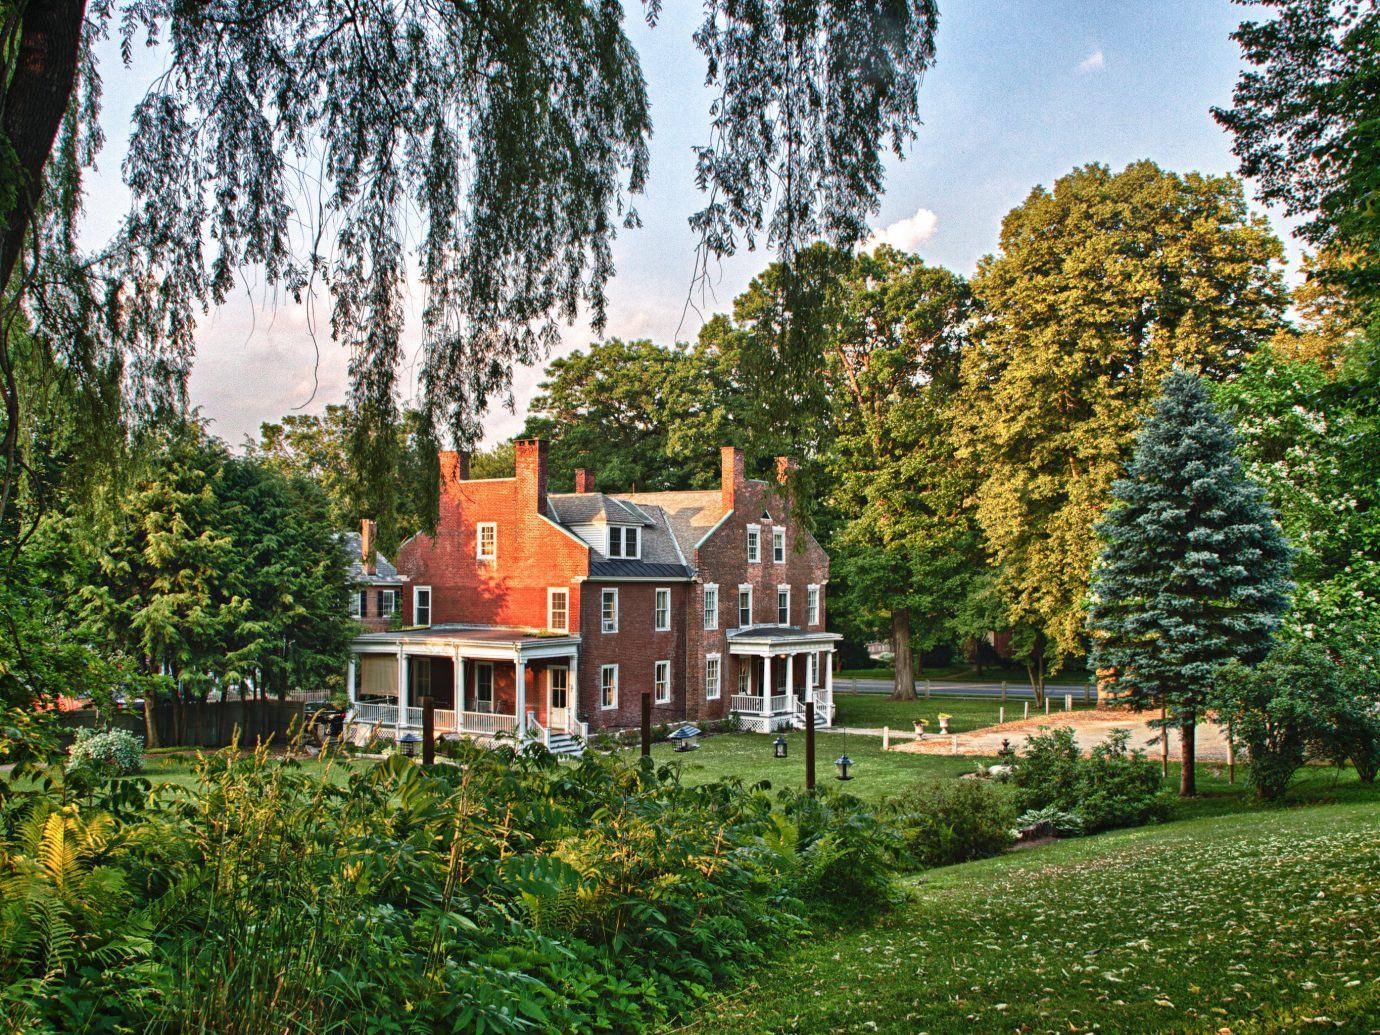 Classic Country Inn Nature Outdoors tree outdoor grass house plant estate botany Garden season home woody plant leaf autumn château park flower backyard yard cottage lawn Forest wooded lush surrounded